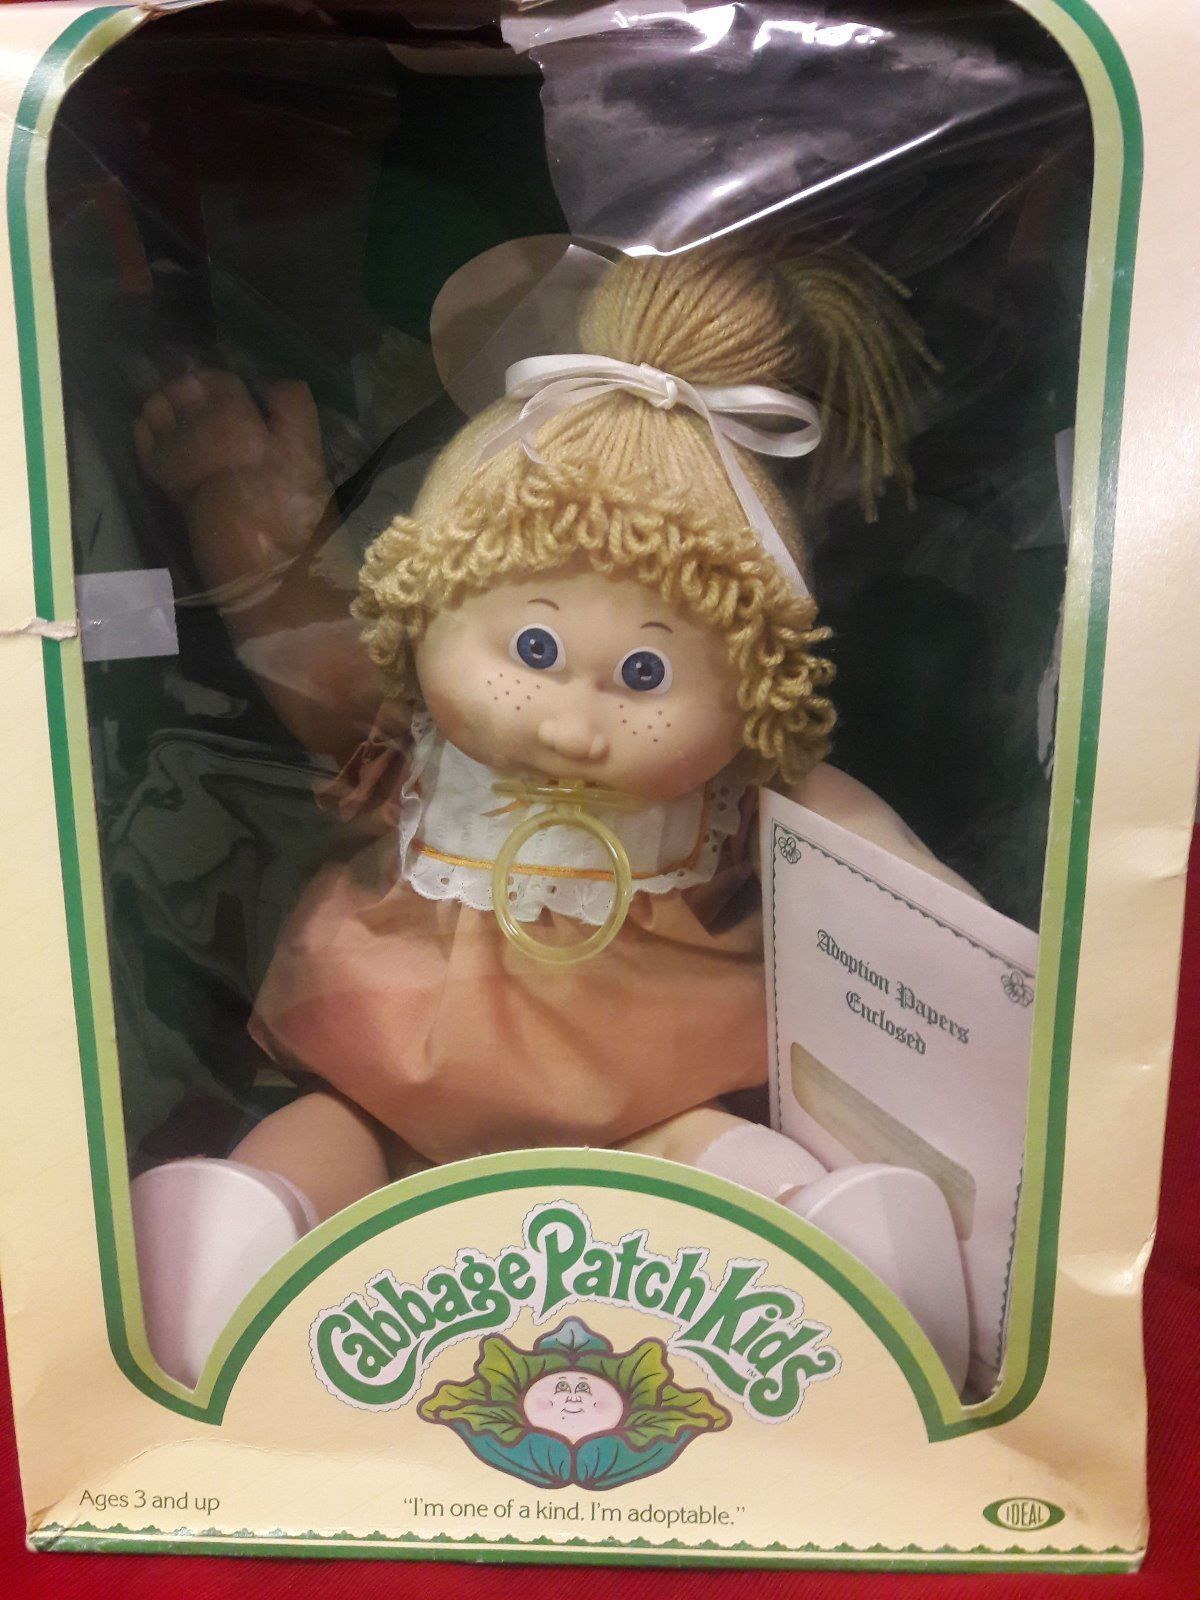 Coleco Cabbage Patch Kids Doll In Box 1983 Blonde Girl Blue Eyes W Adoption Ppw Ebay Cabbage Patch Babies Cabbage Patch Kids Cabbage Patch Kids Dolls